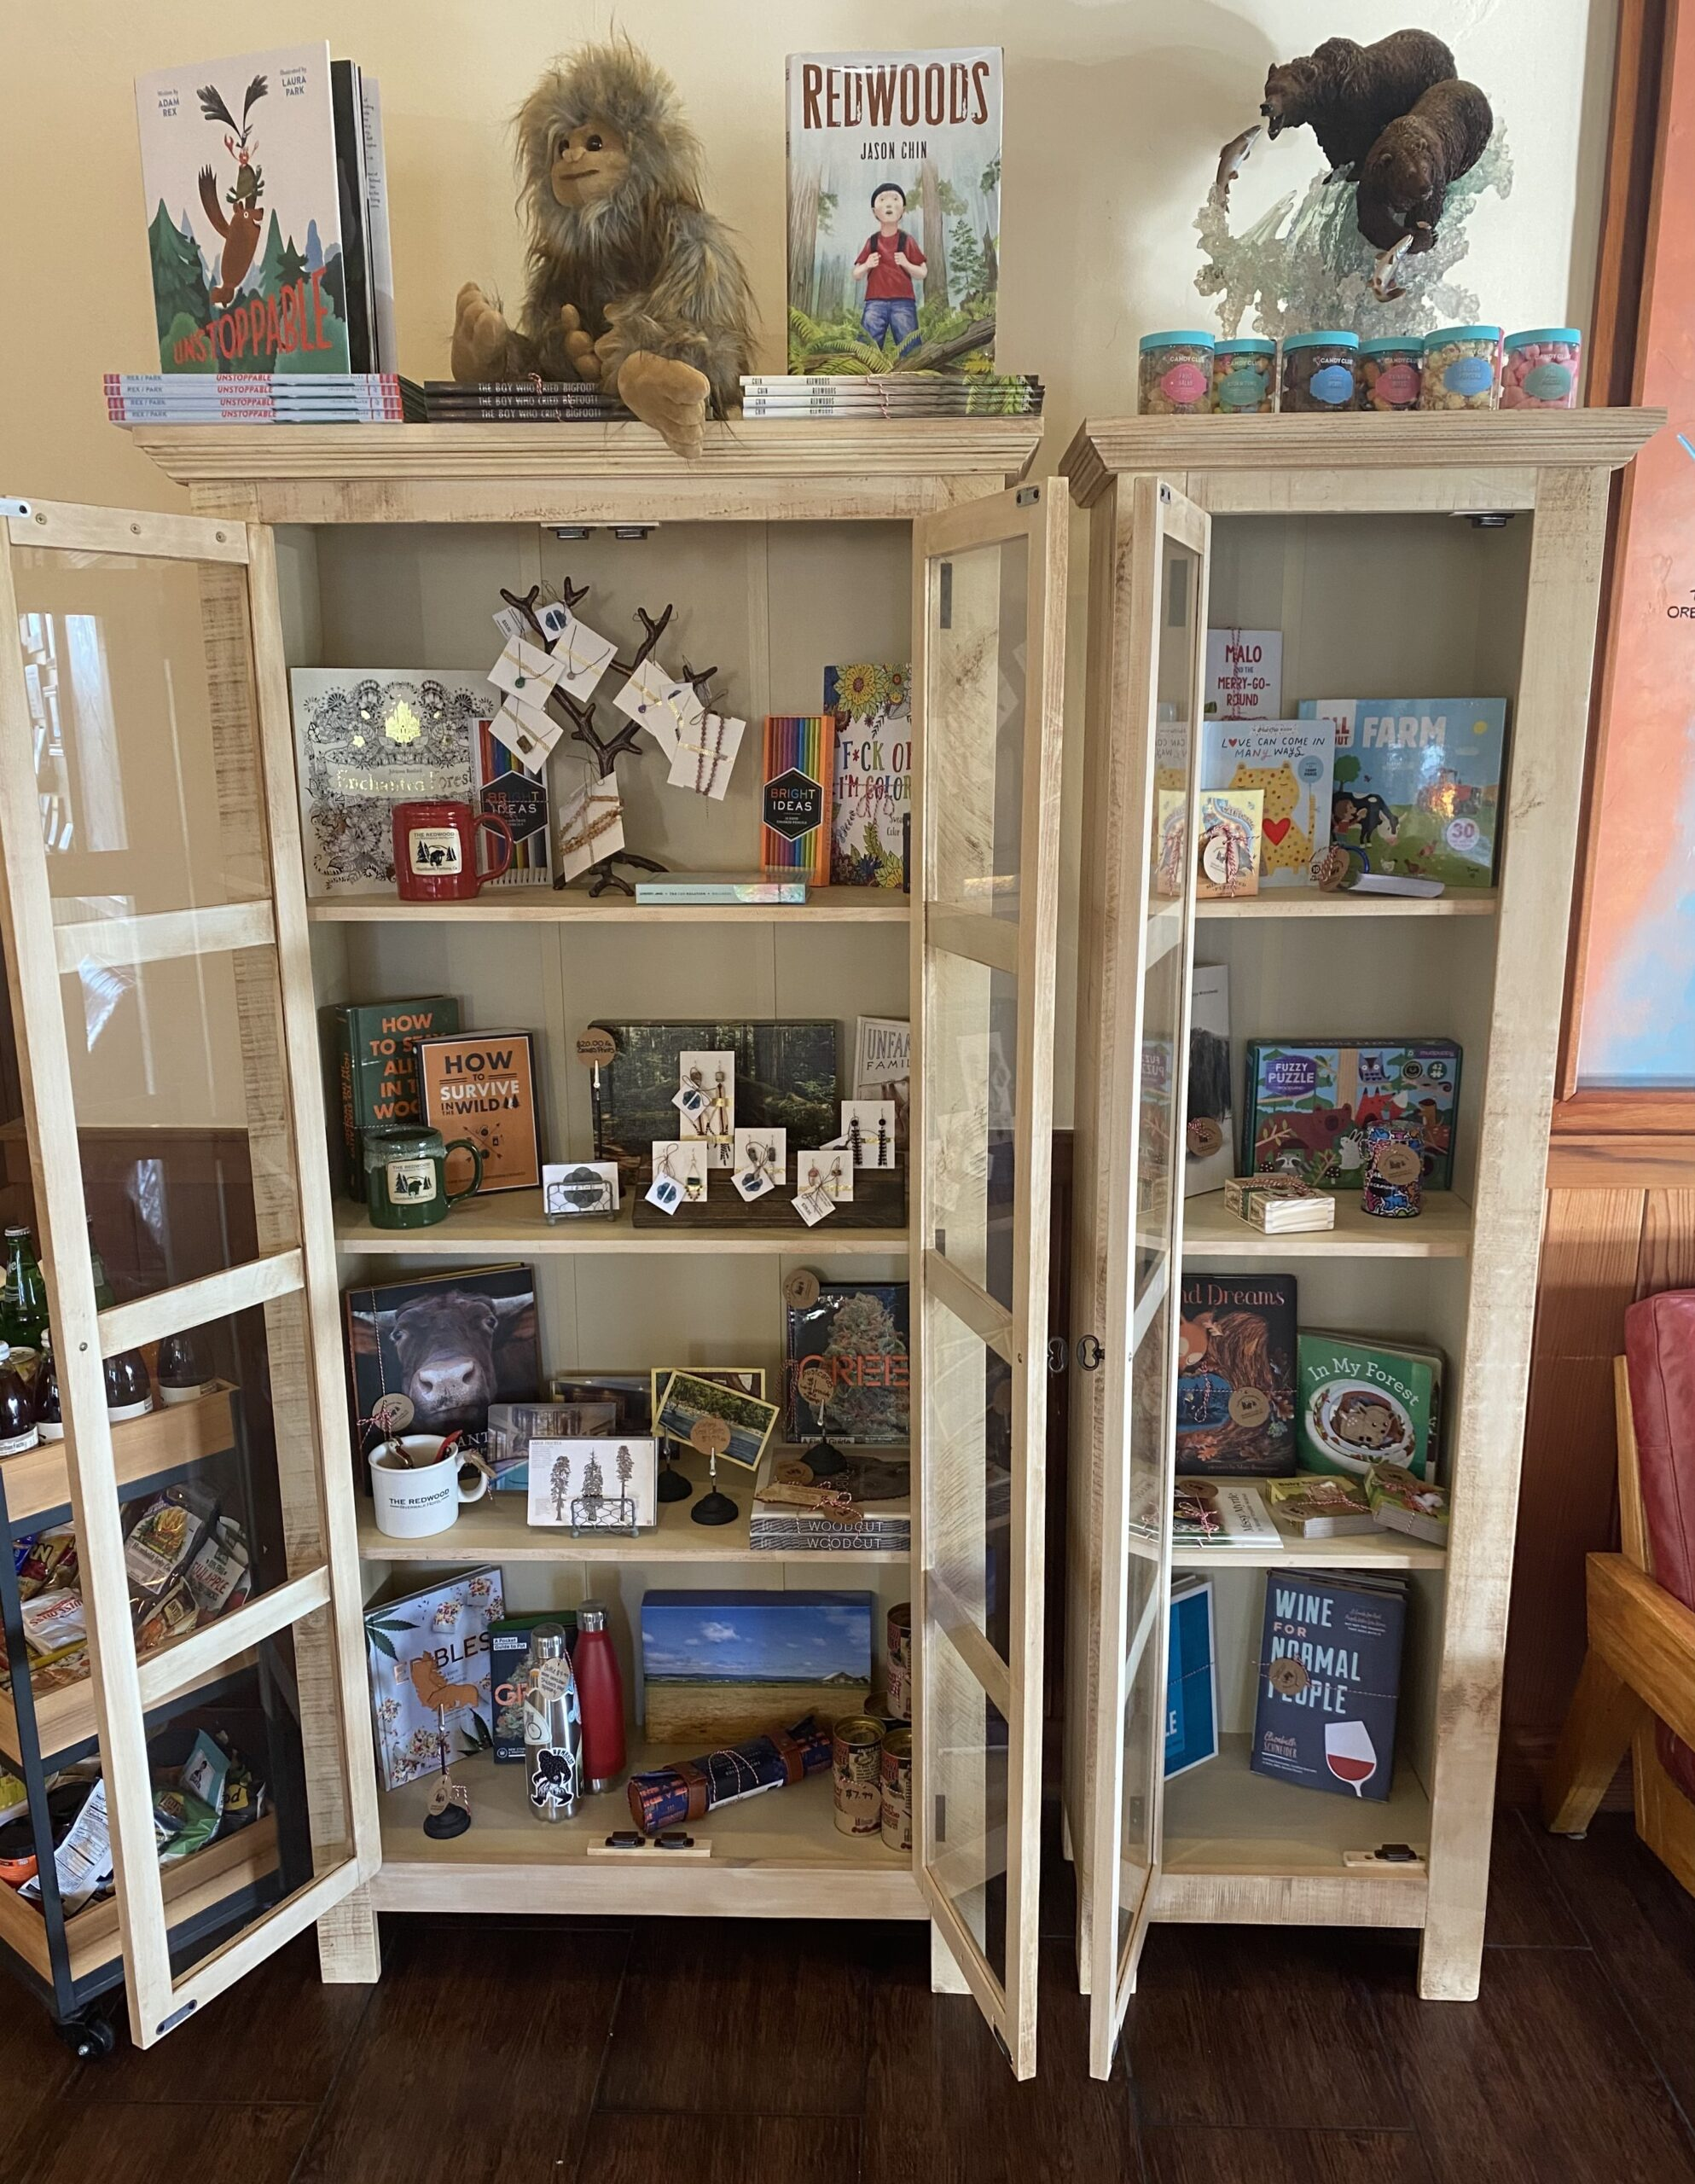 Shelving unit at TR Mercantile in The Redwood Hotel full of gift items